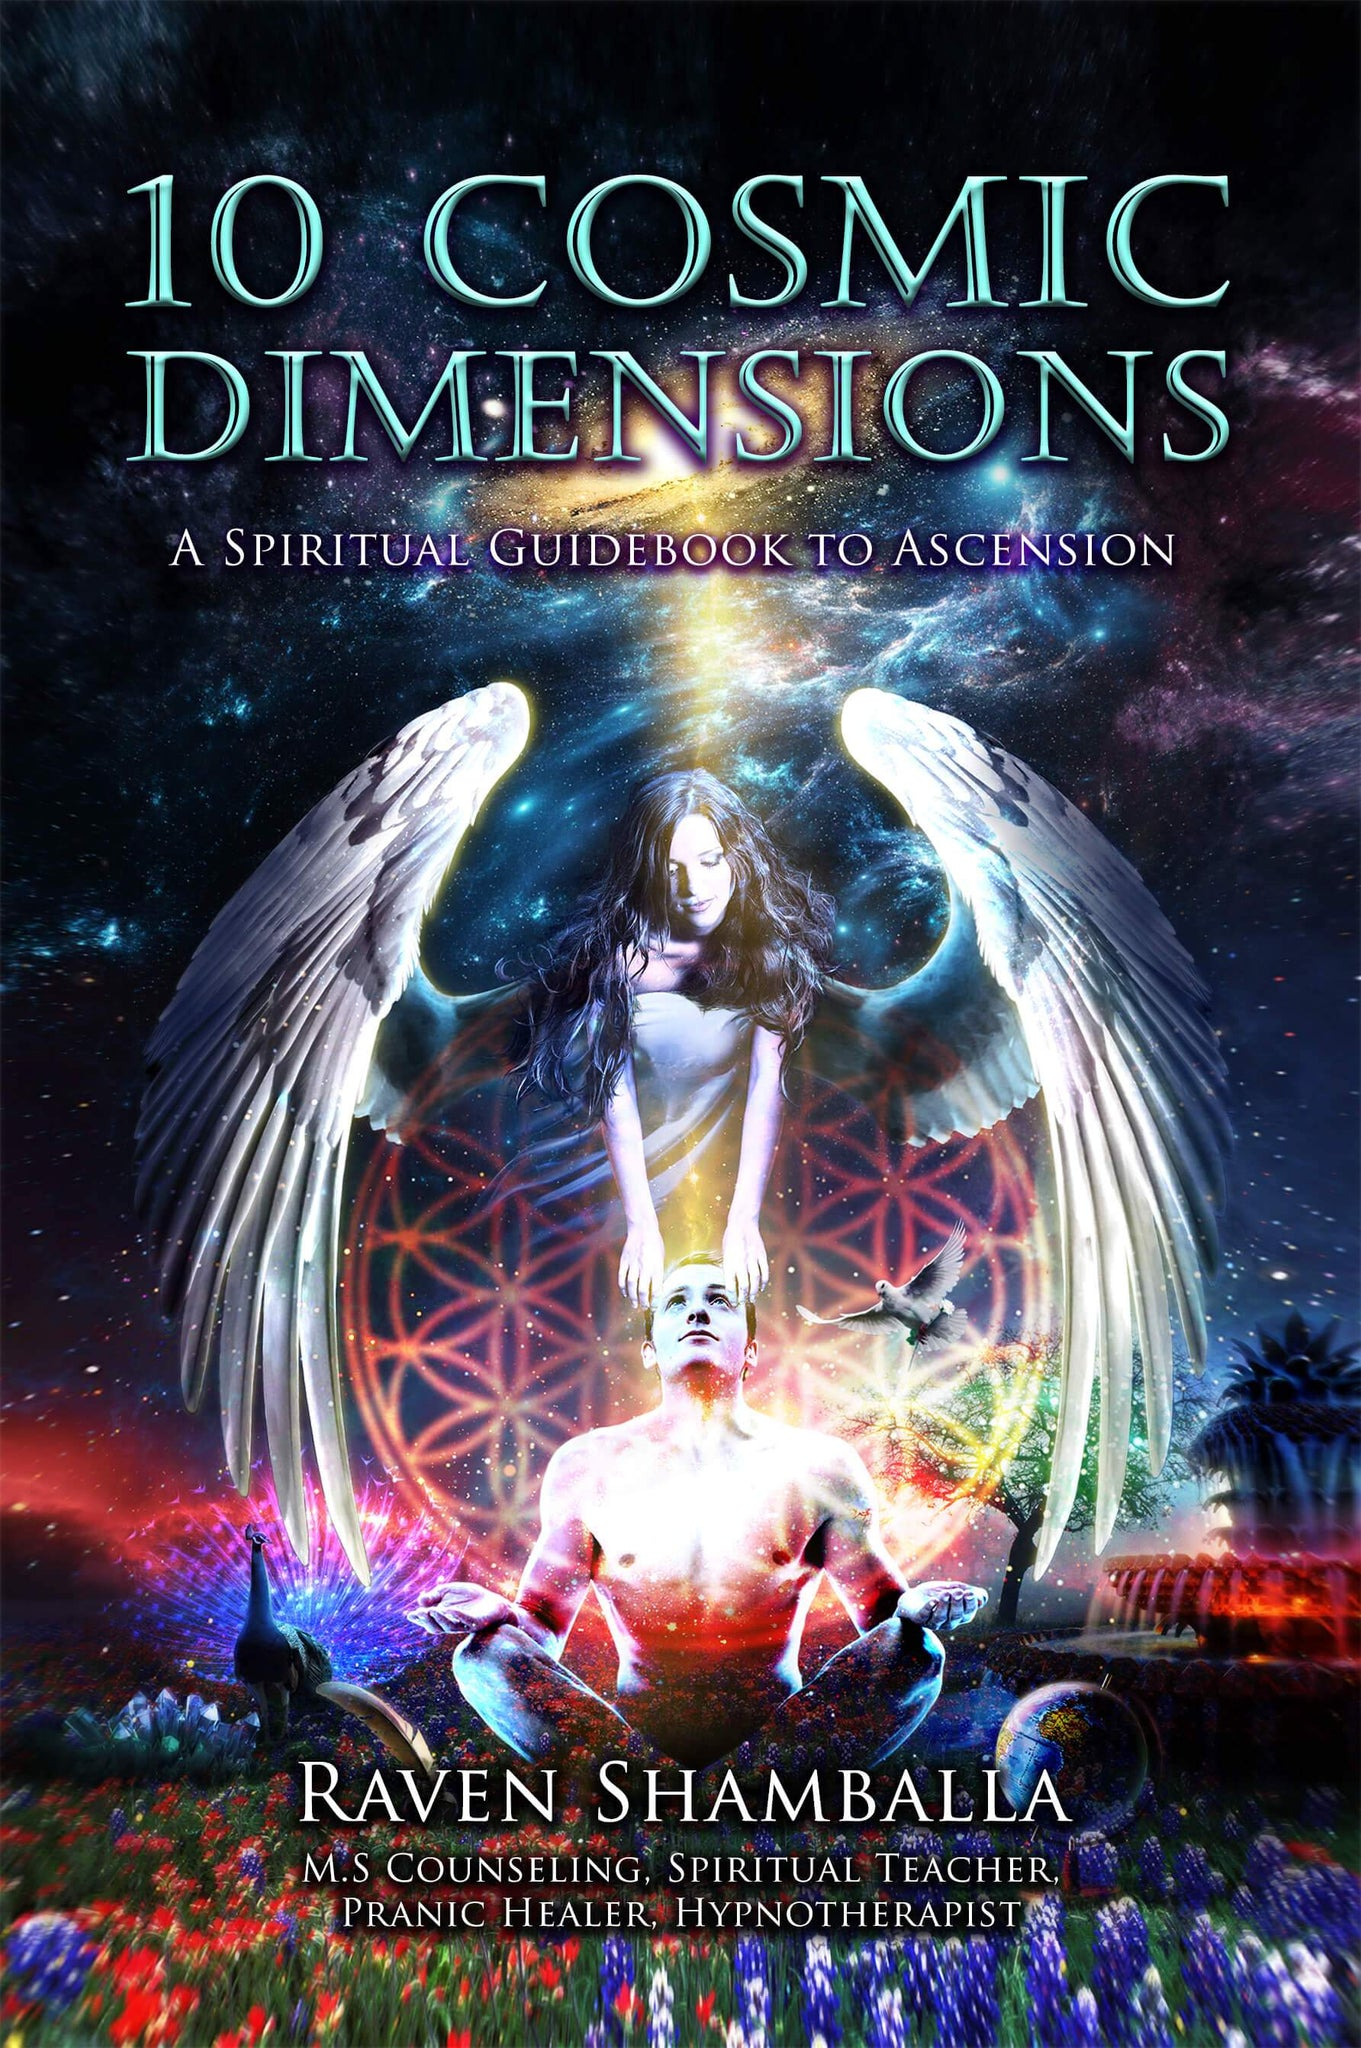 10 Cosmic Dimensions: A Spiritual Guidebook to Ascension - Soft Cover